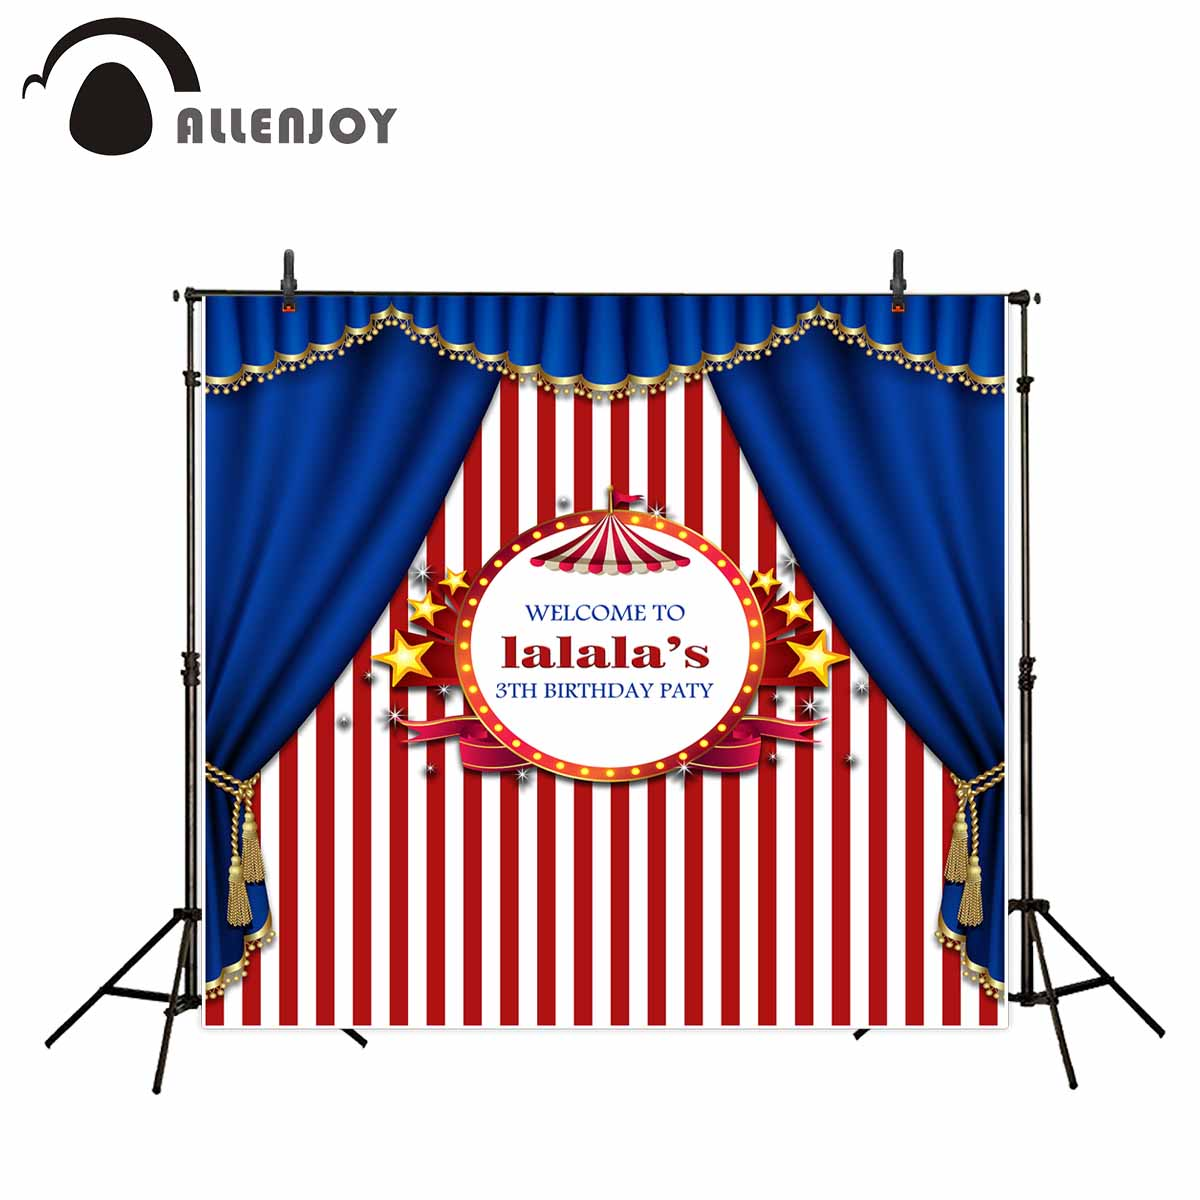 Allenjoy photography backdrop circus birthday tent stars party red blue background photocall fotografia photobooth allenjoy backdrop spring background green grass light bokeh dots photocall kids baby for photo studio